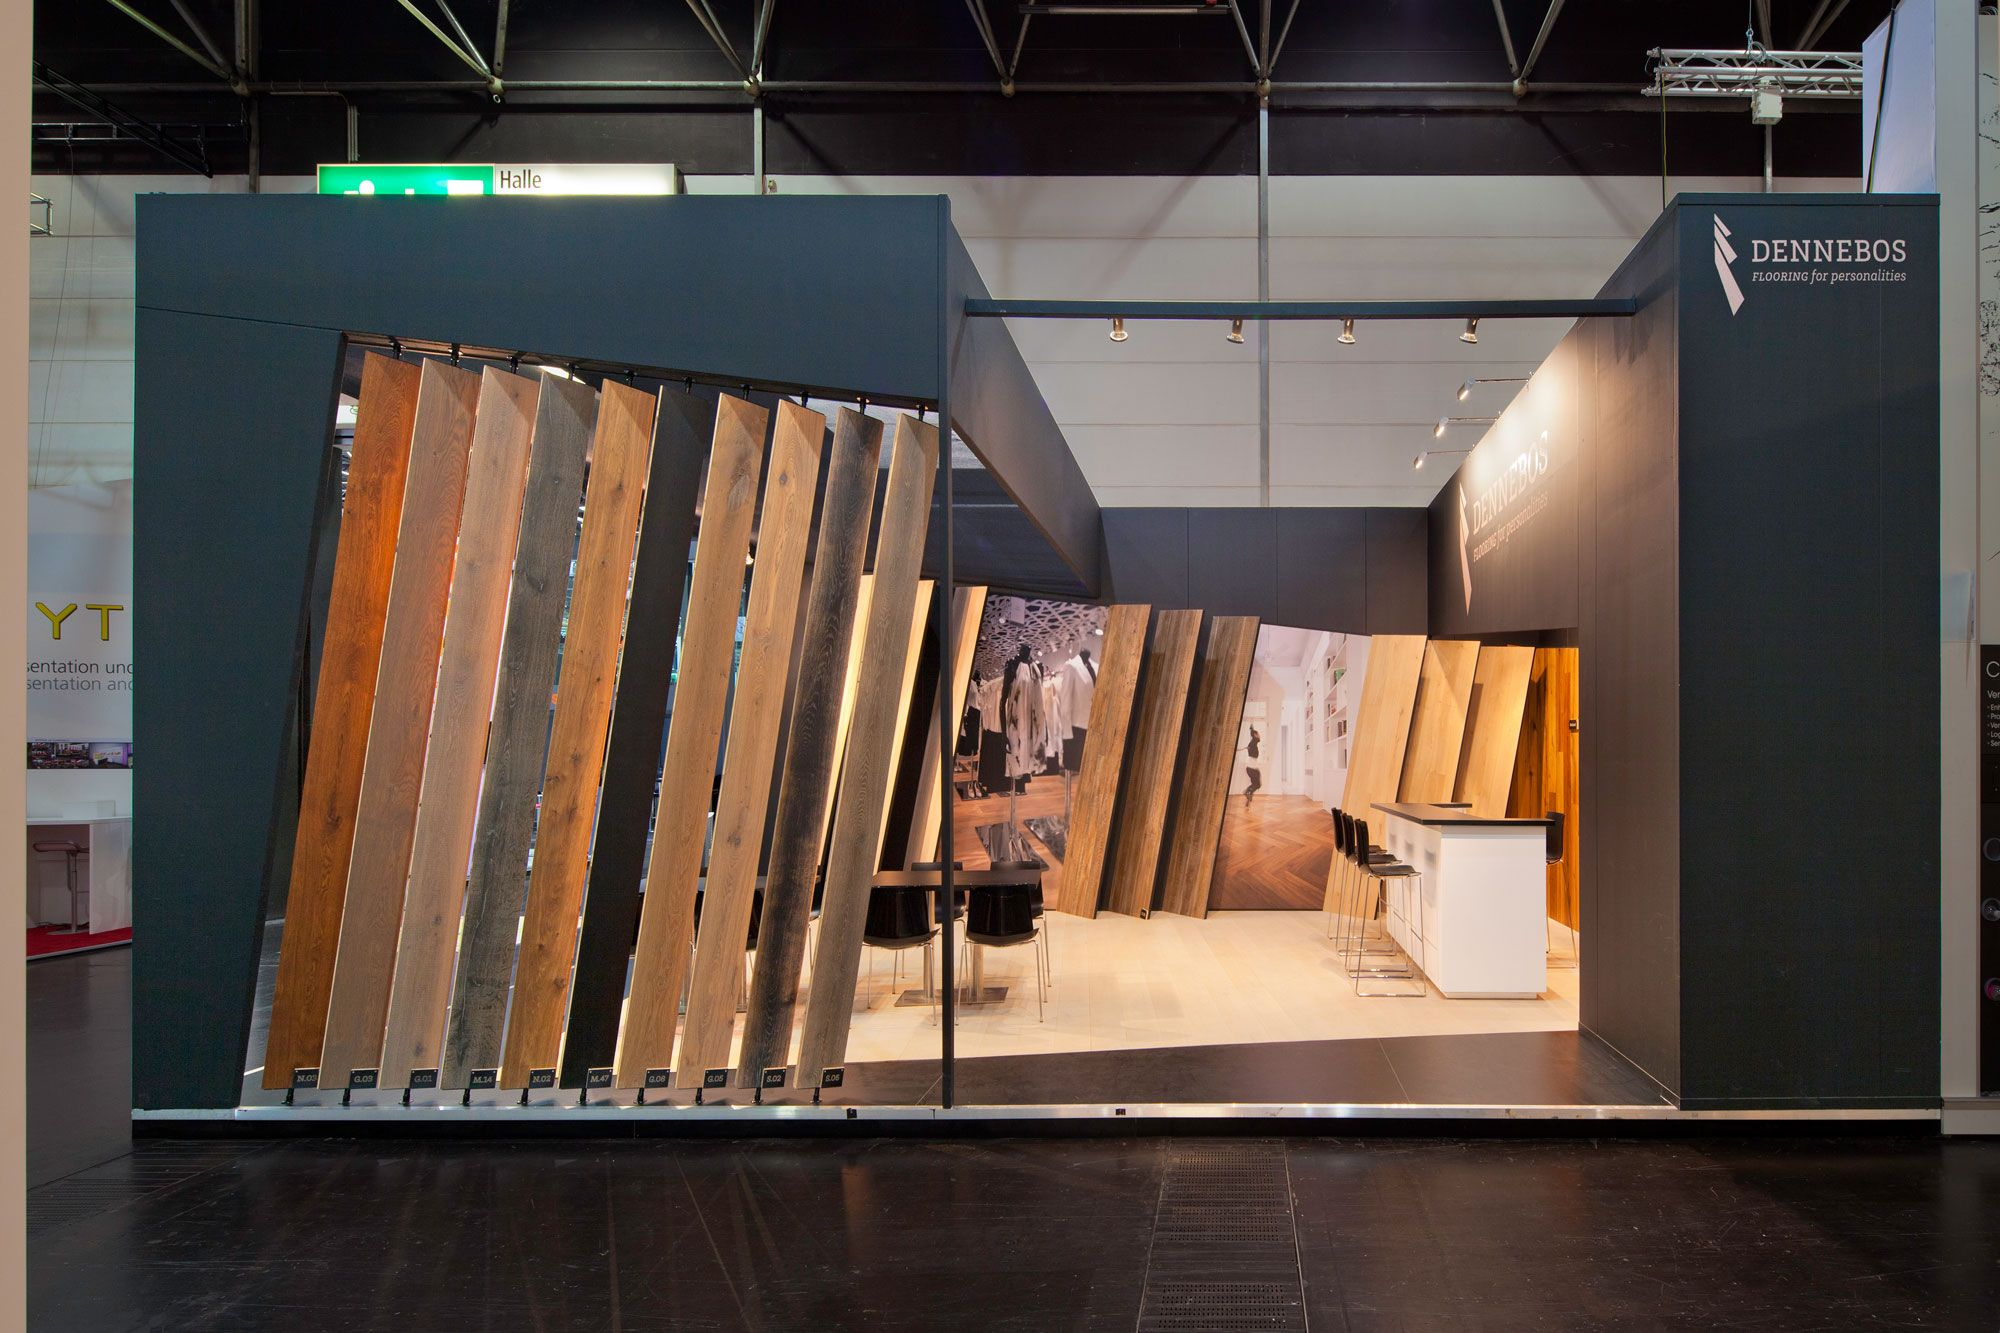 Stand Extérieur Stand From The Inside Standbuilding For Dennebos At Euroshop Plv